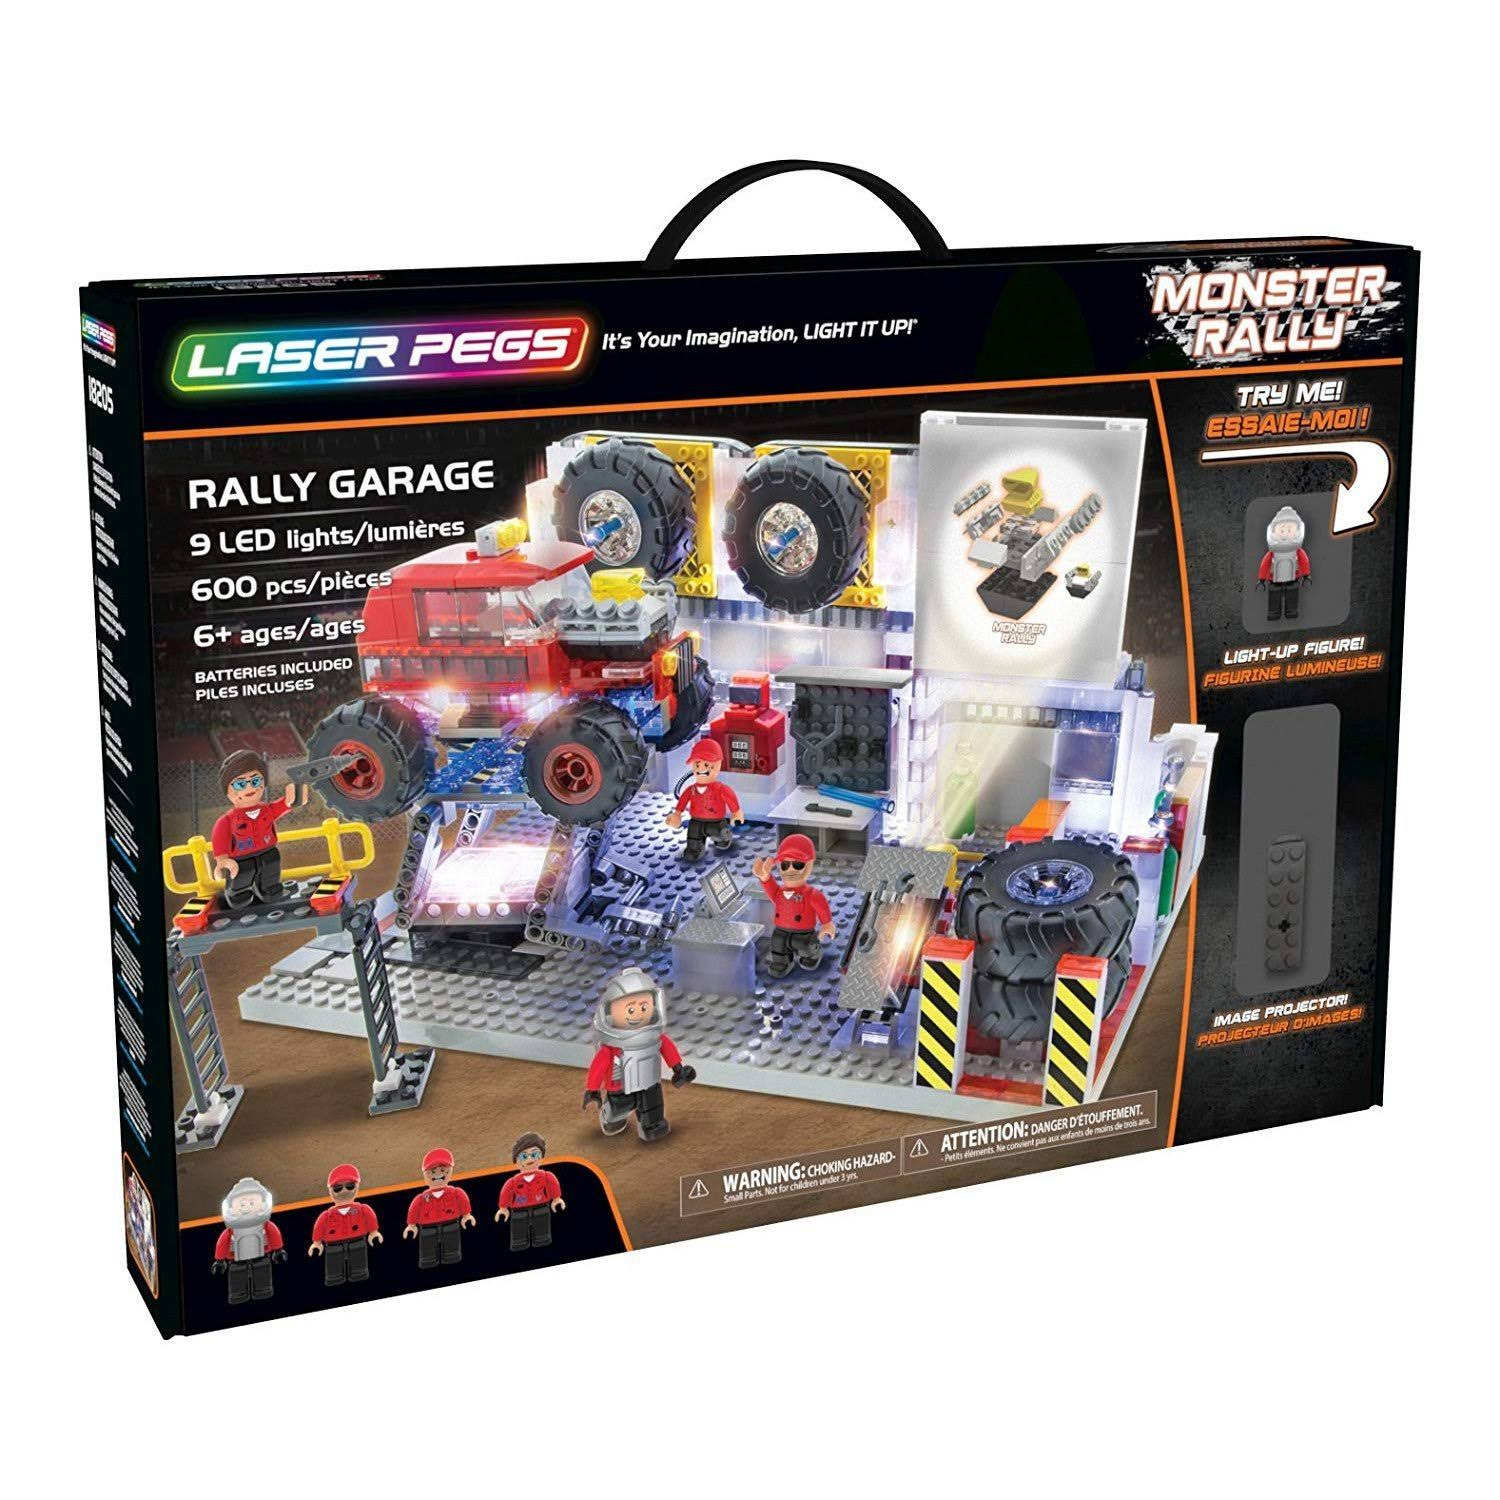 Laser Pegs 18205 Rally Garage Construction Kit